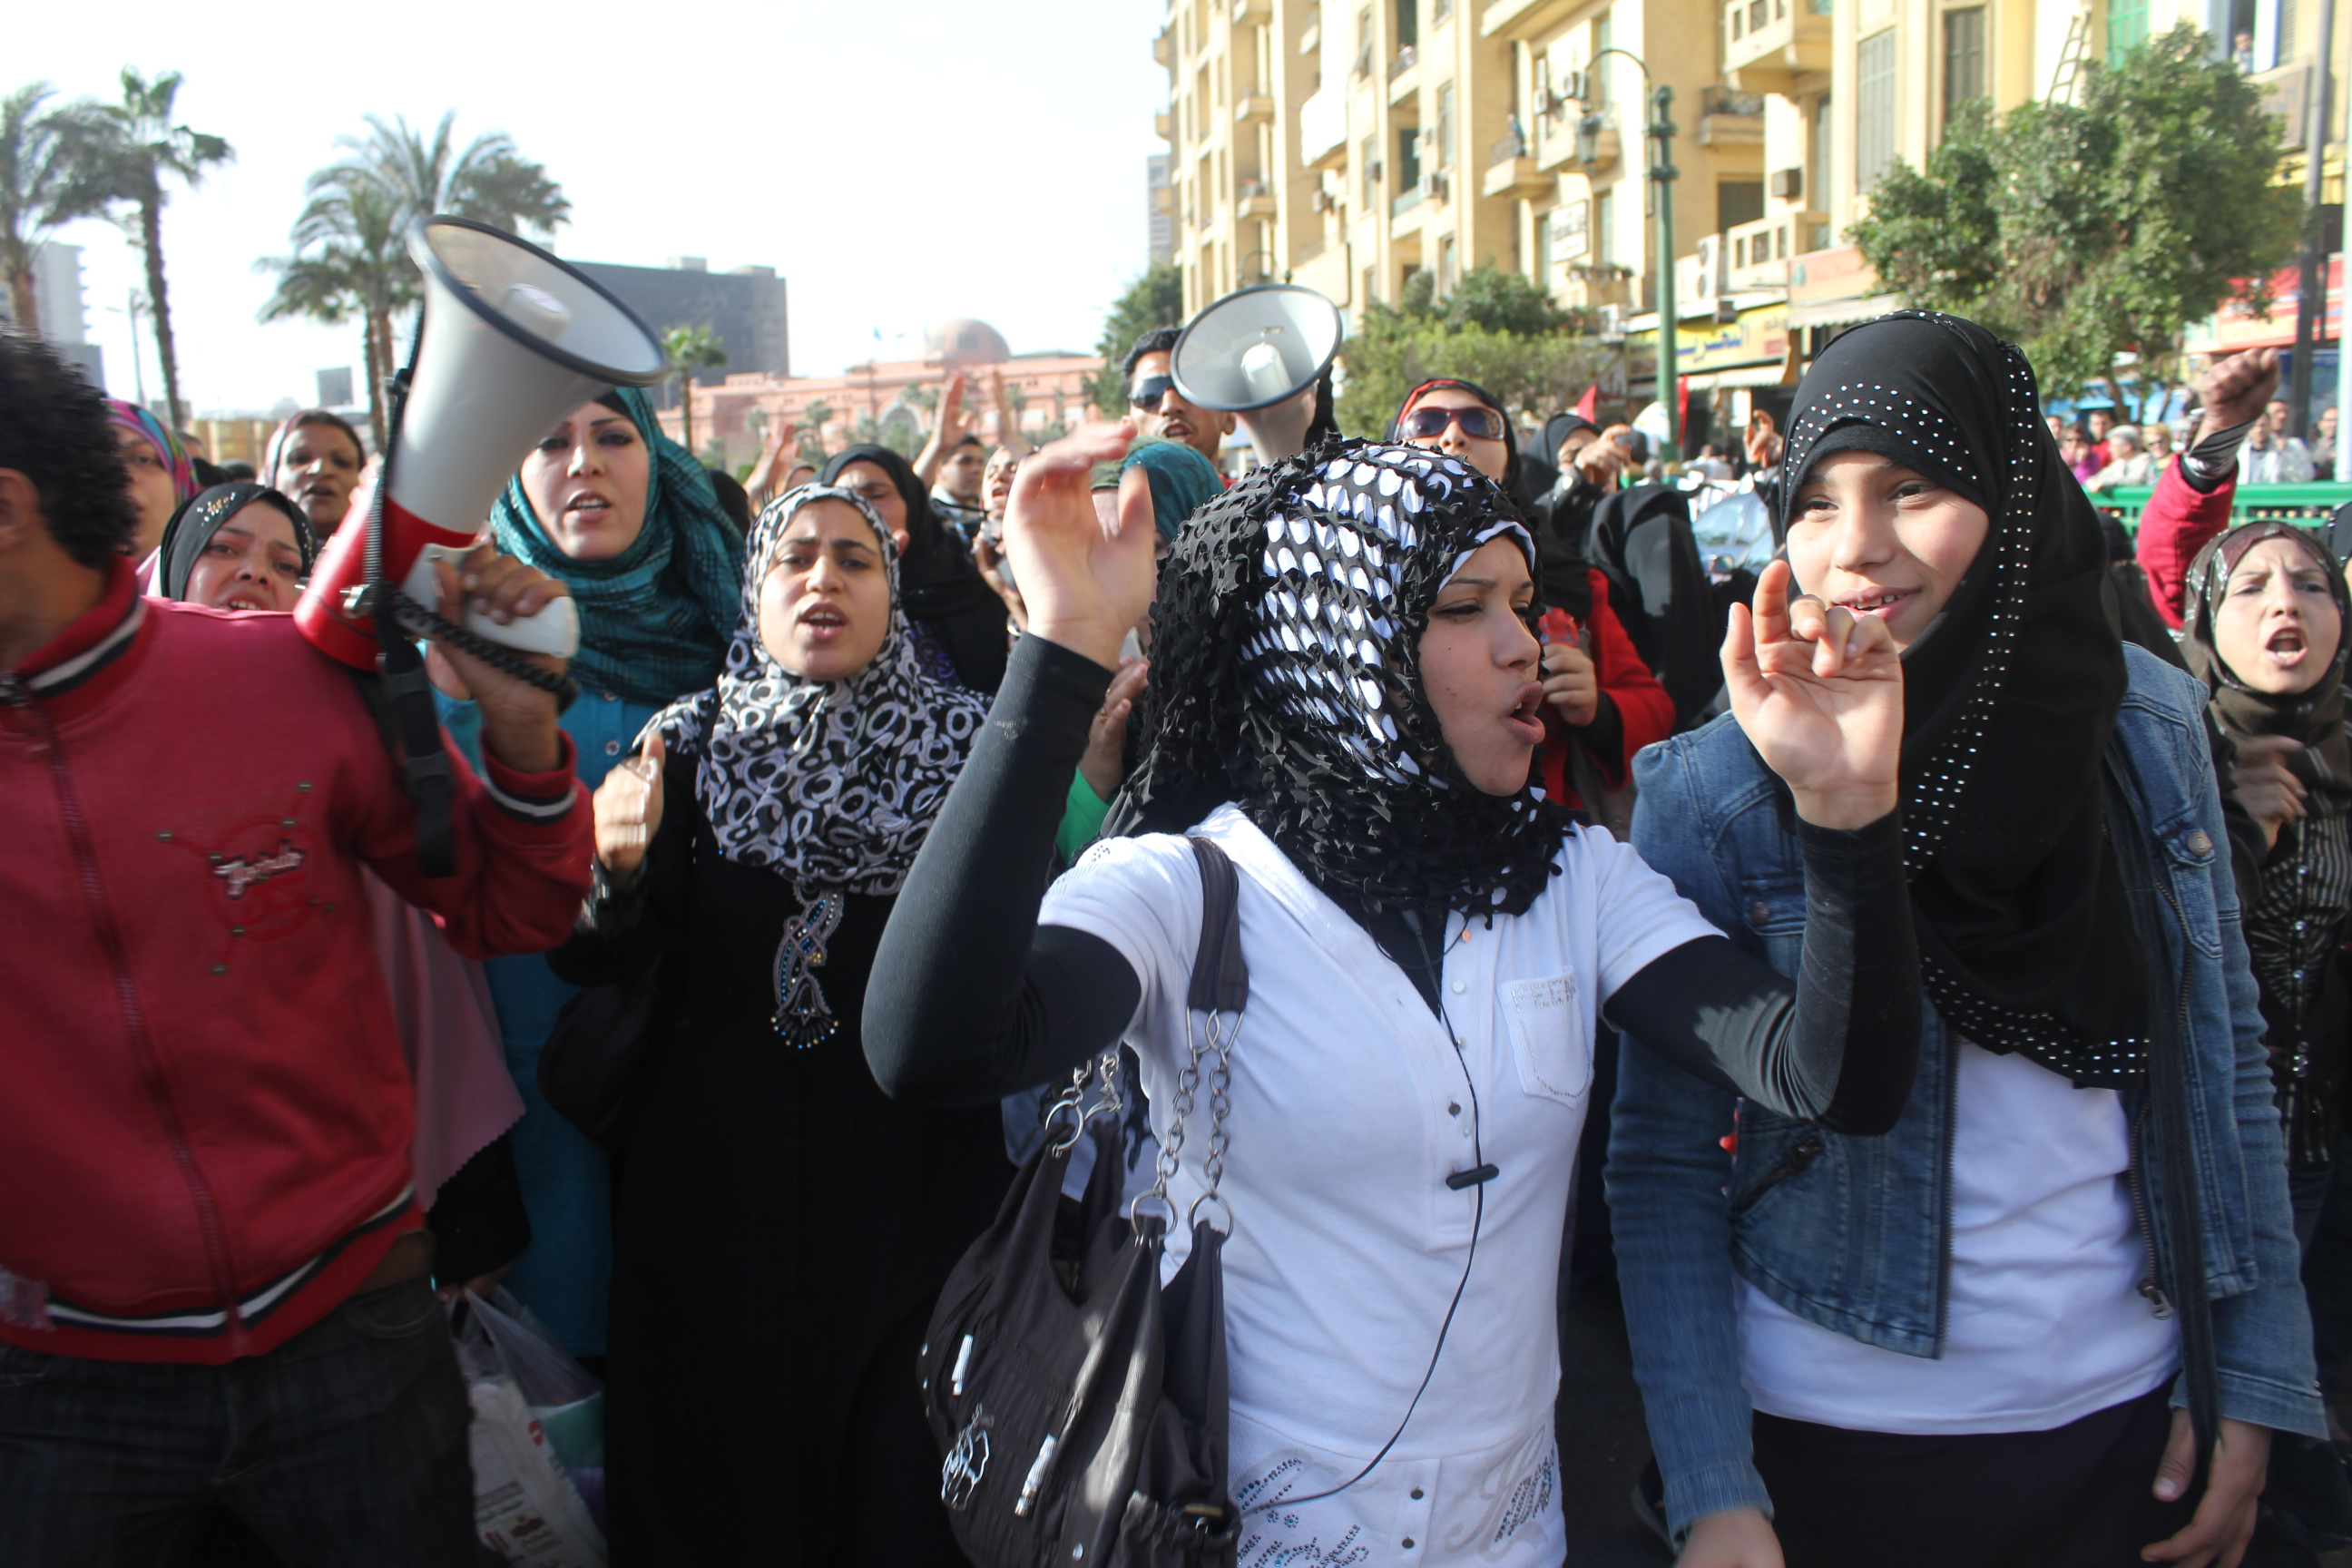 Image: Women's rights protest in Egypt